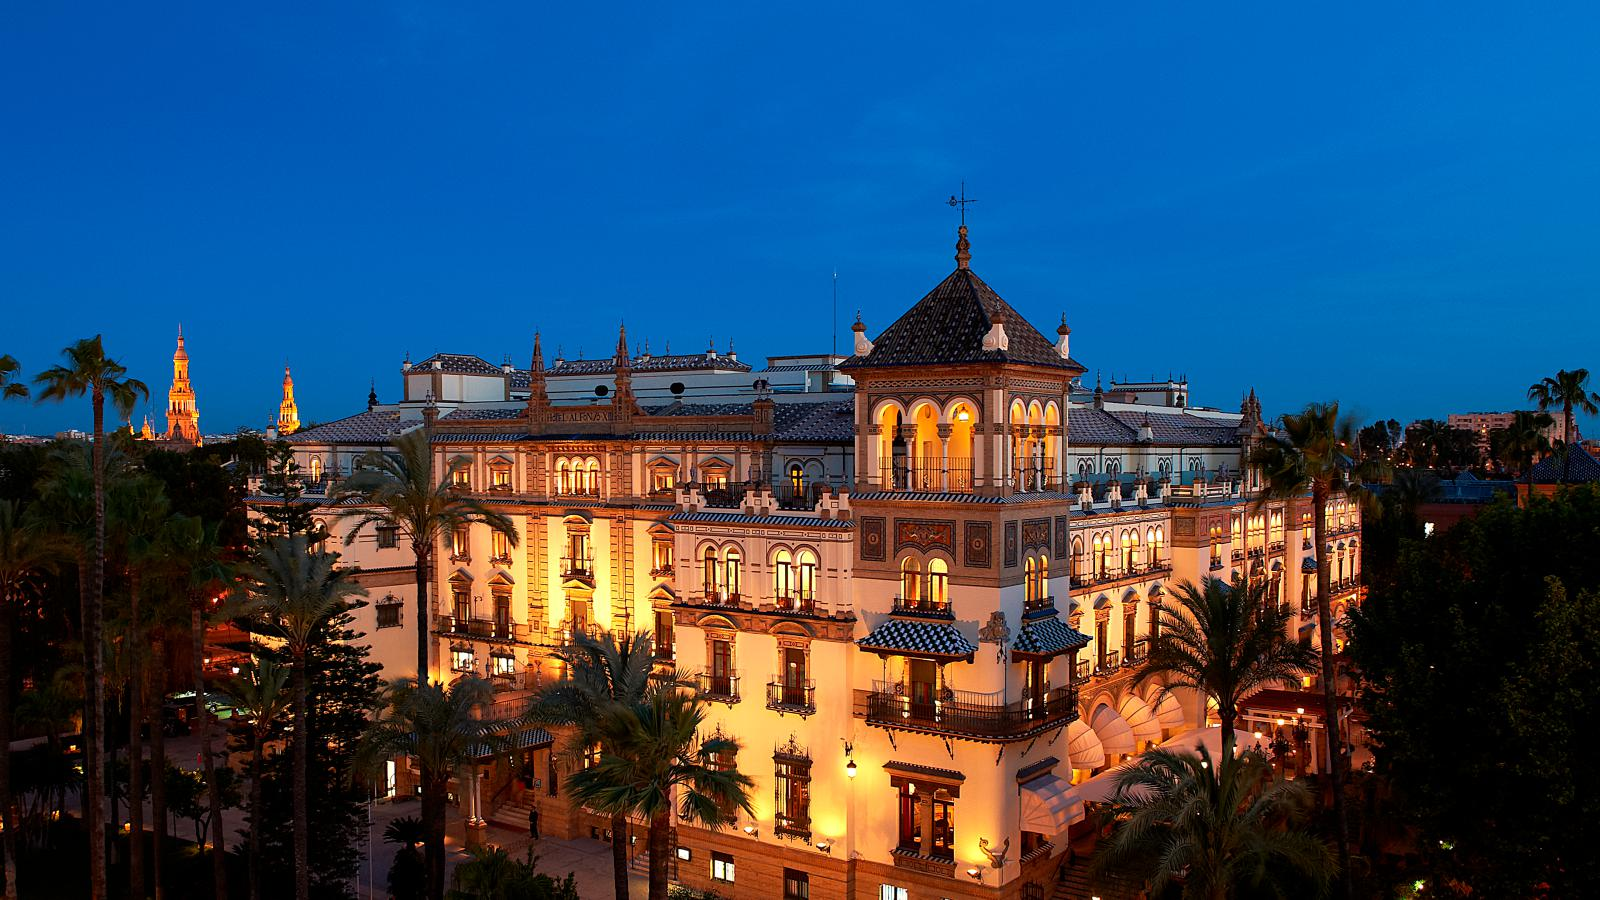 Hotel Alfonso. Image source.